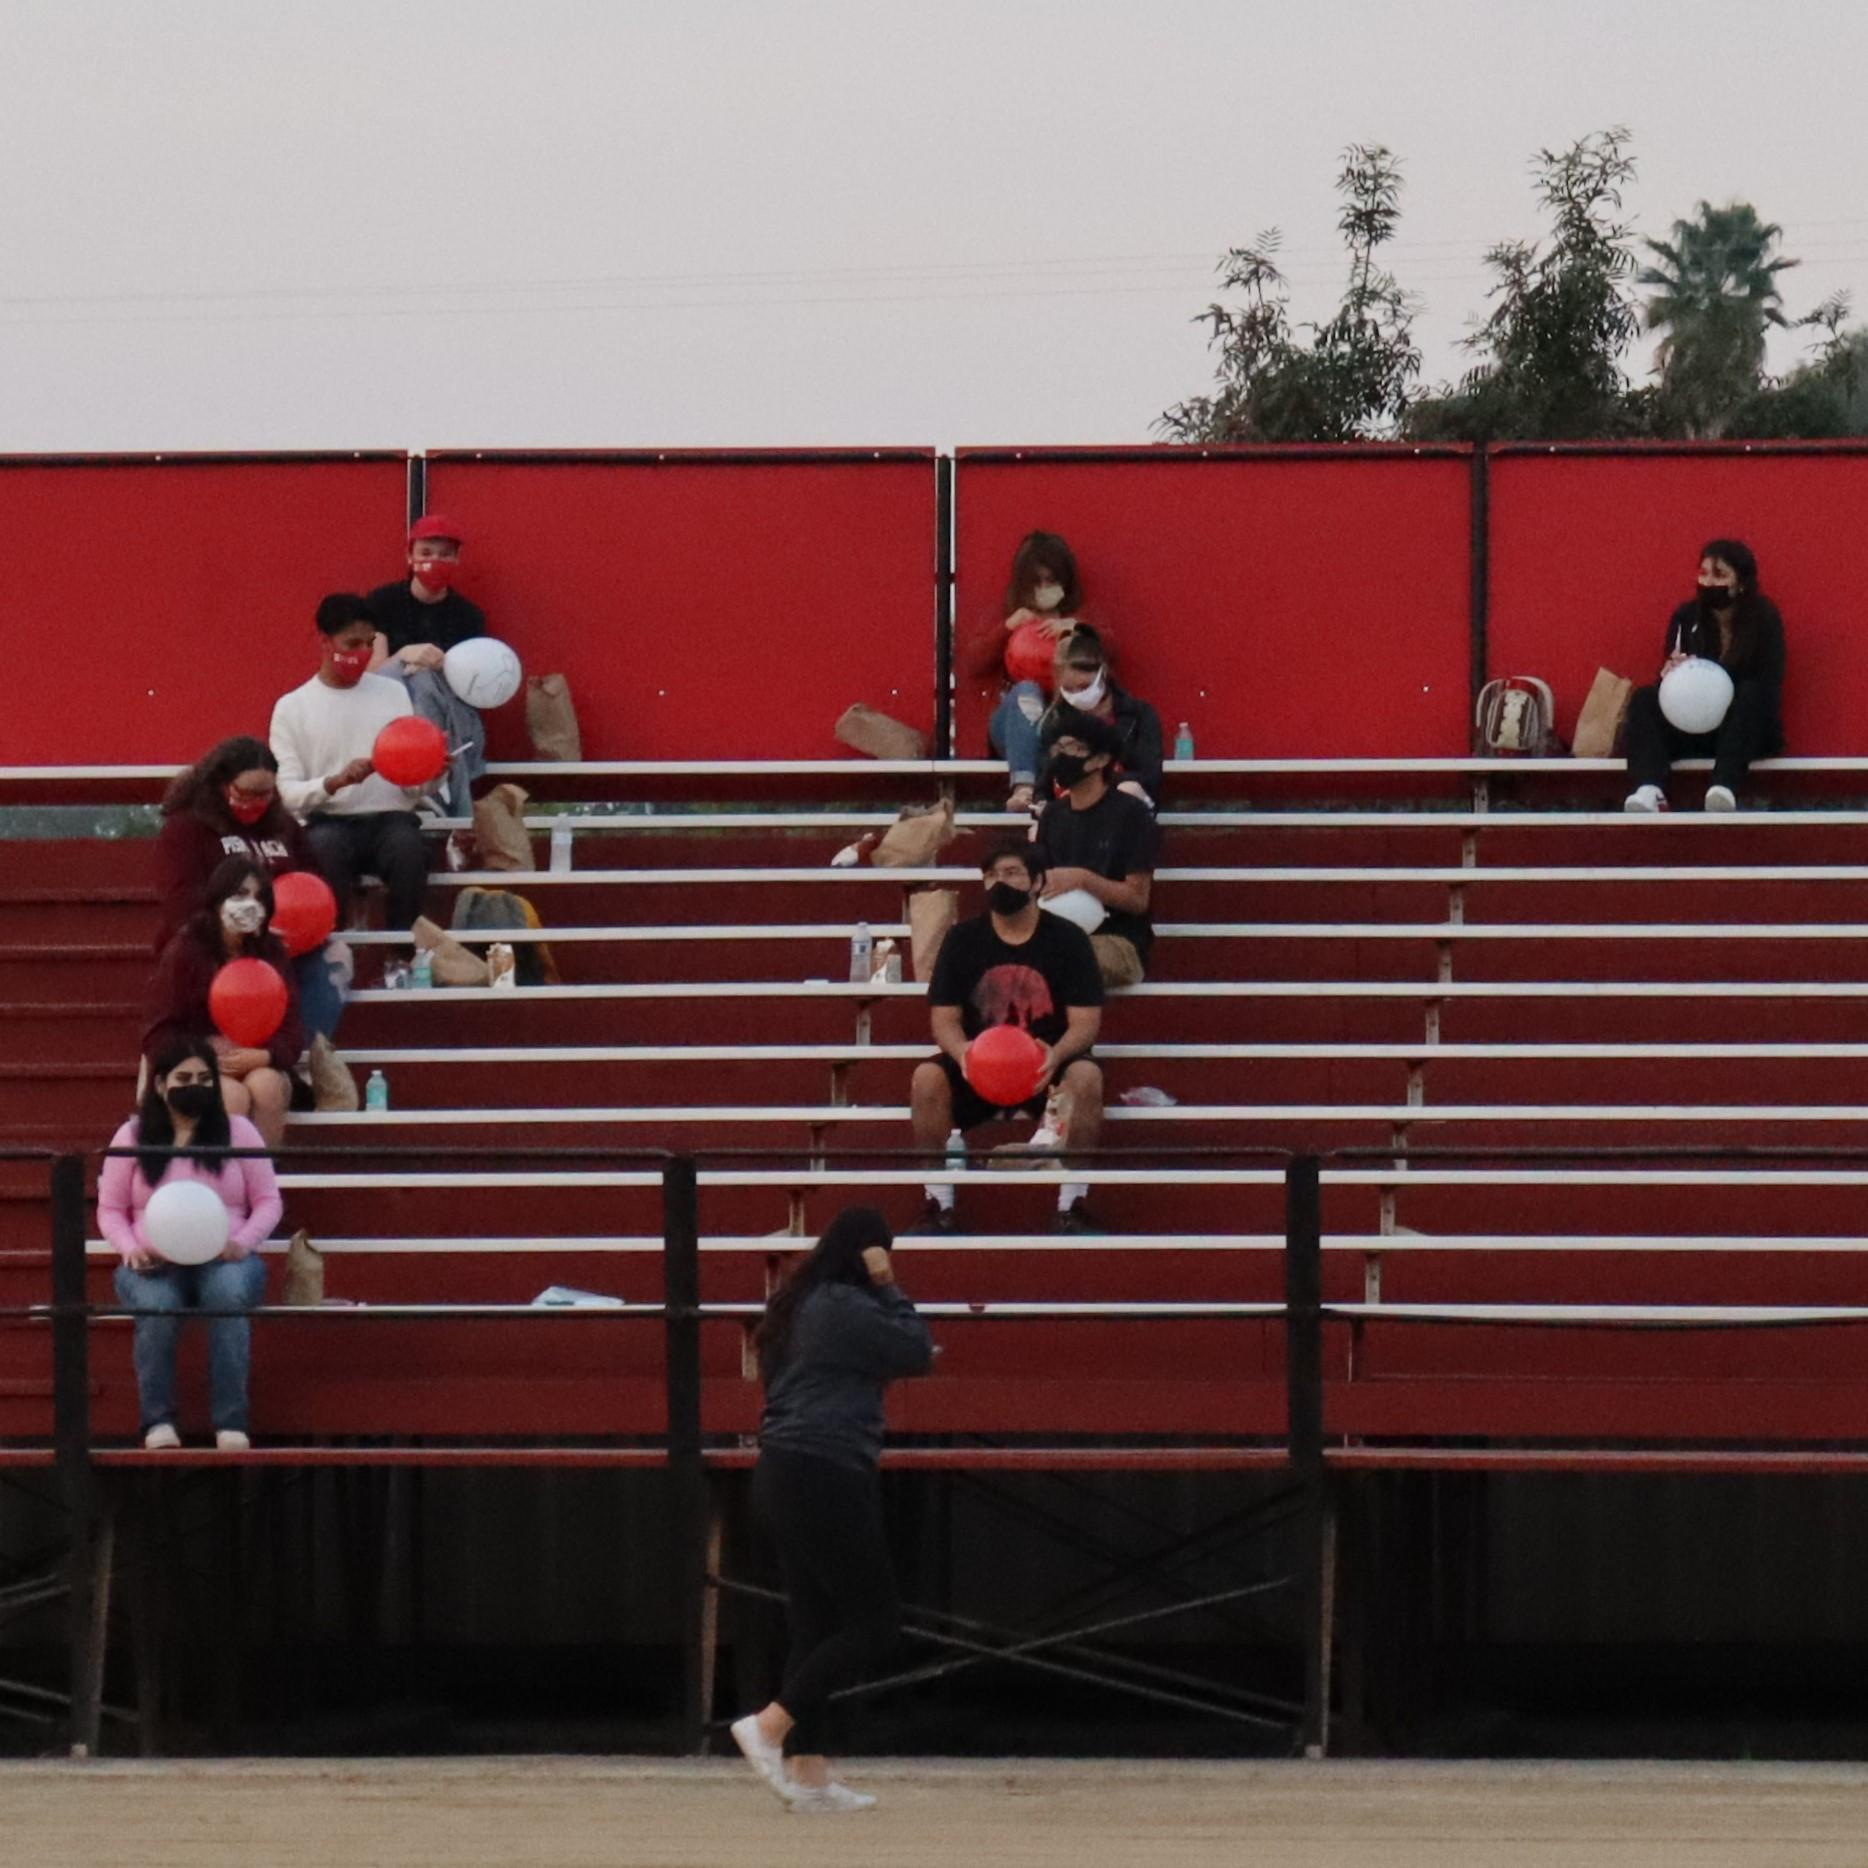 students and staff in the bleachers